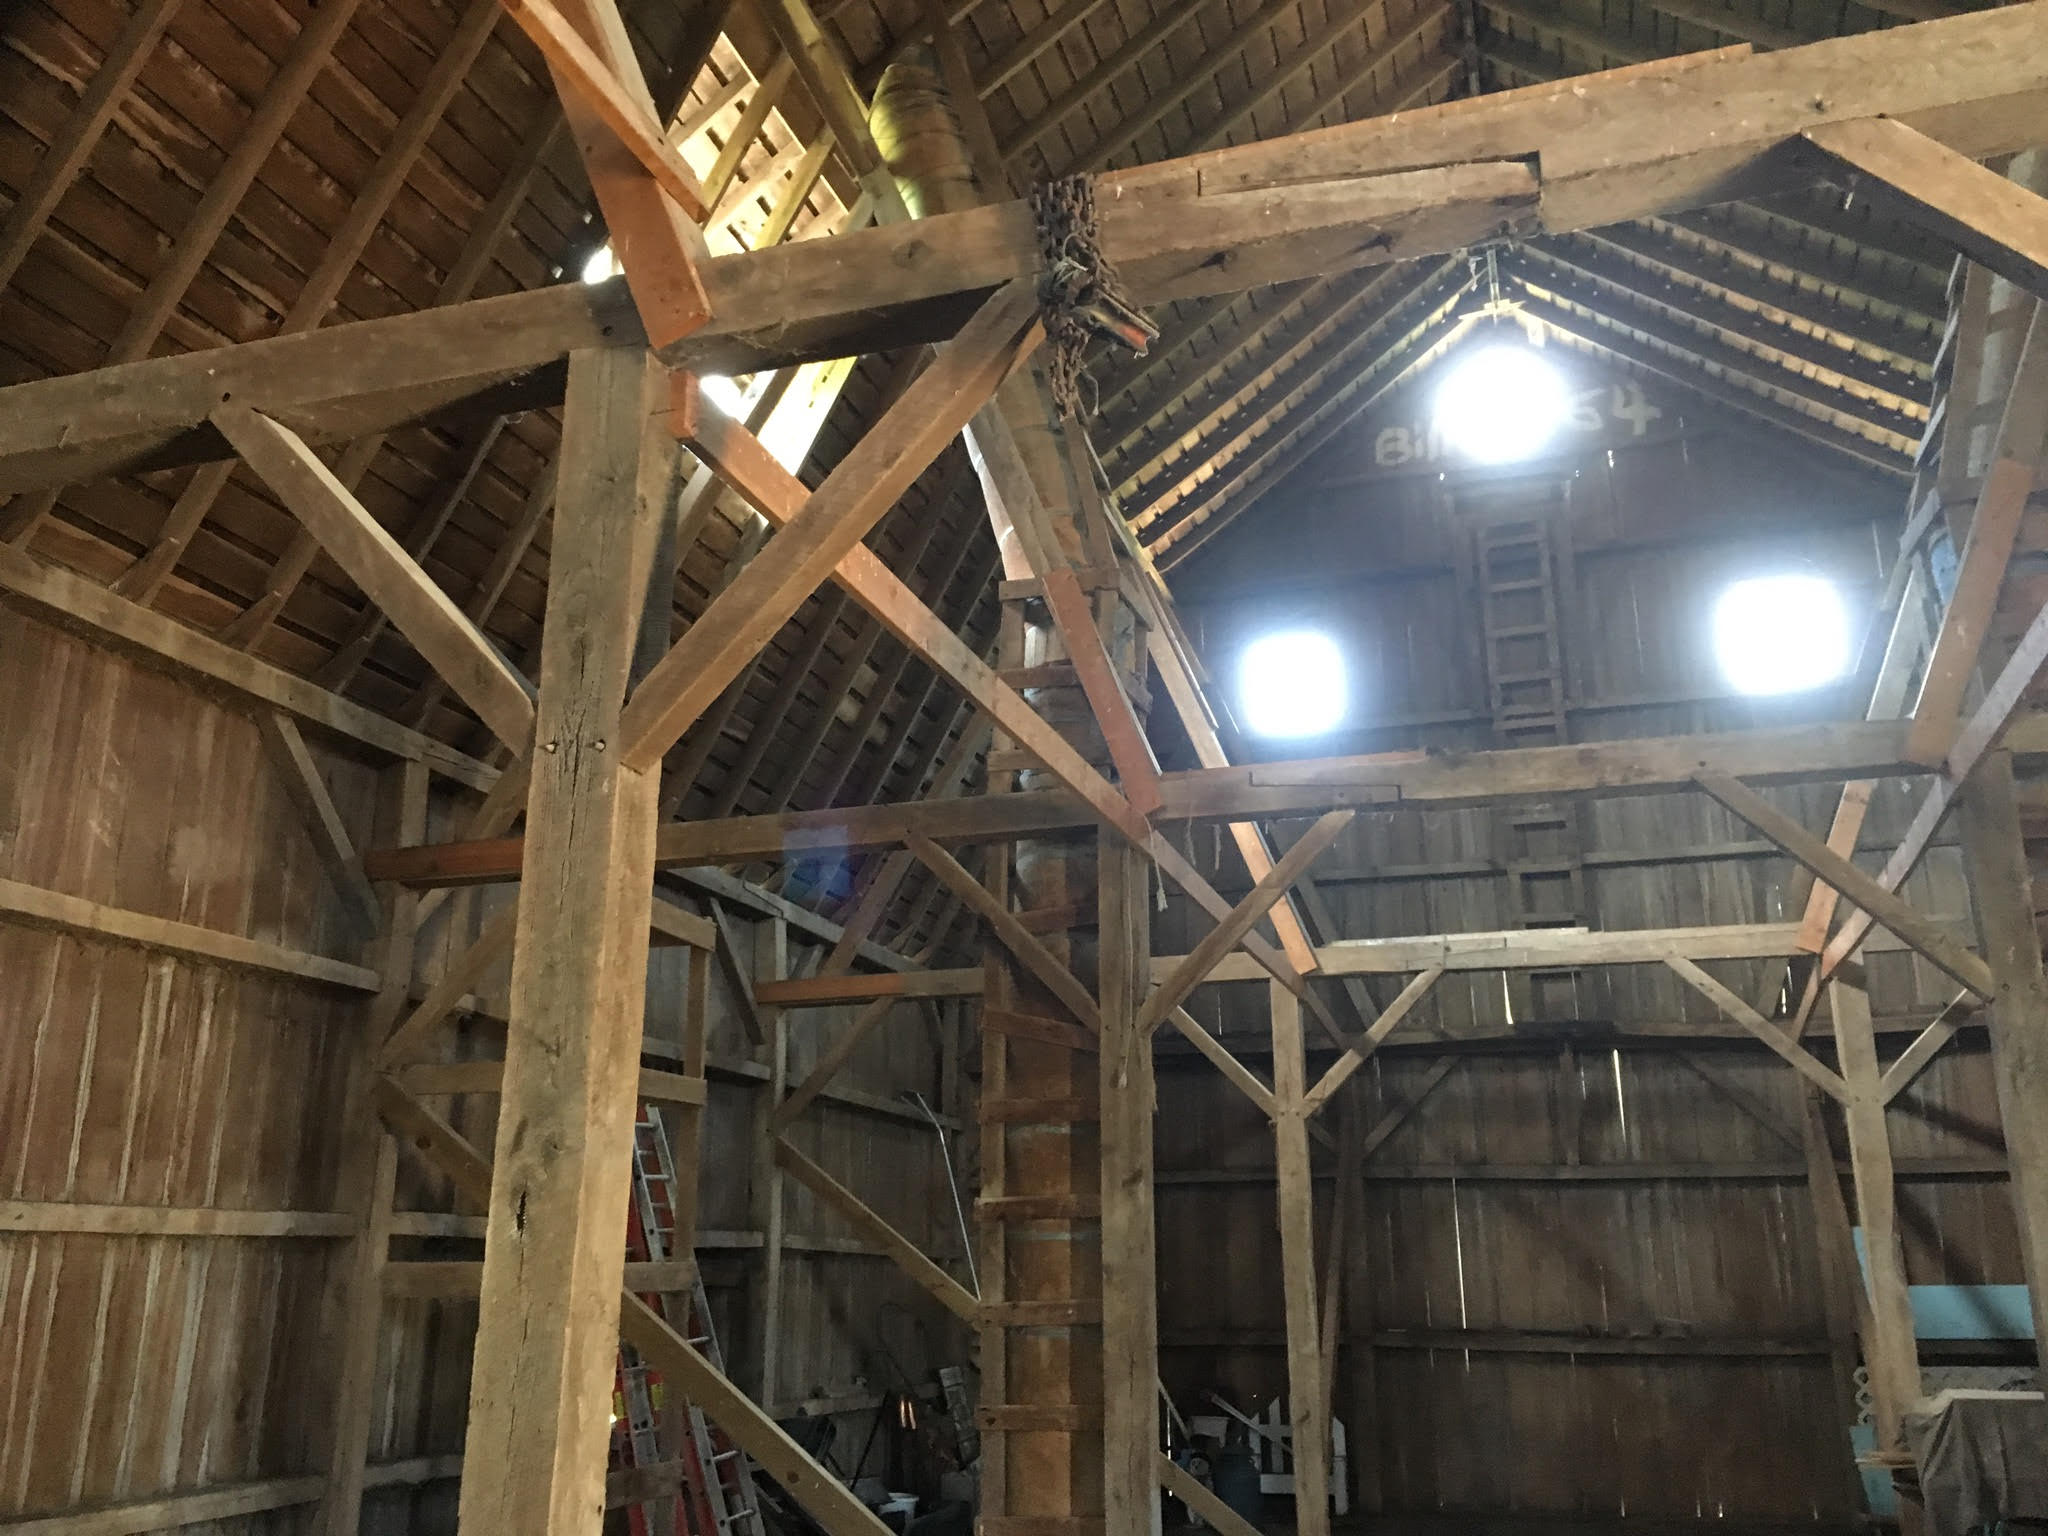 Interior of Jack Smith Barn